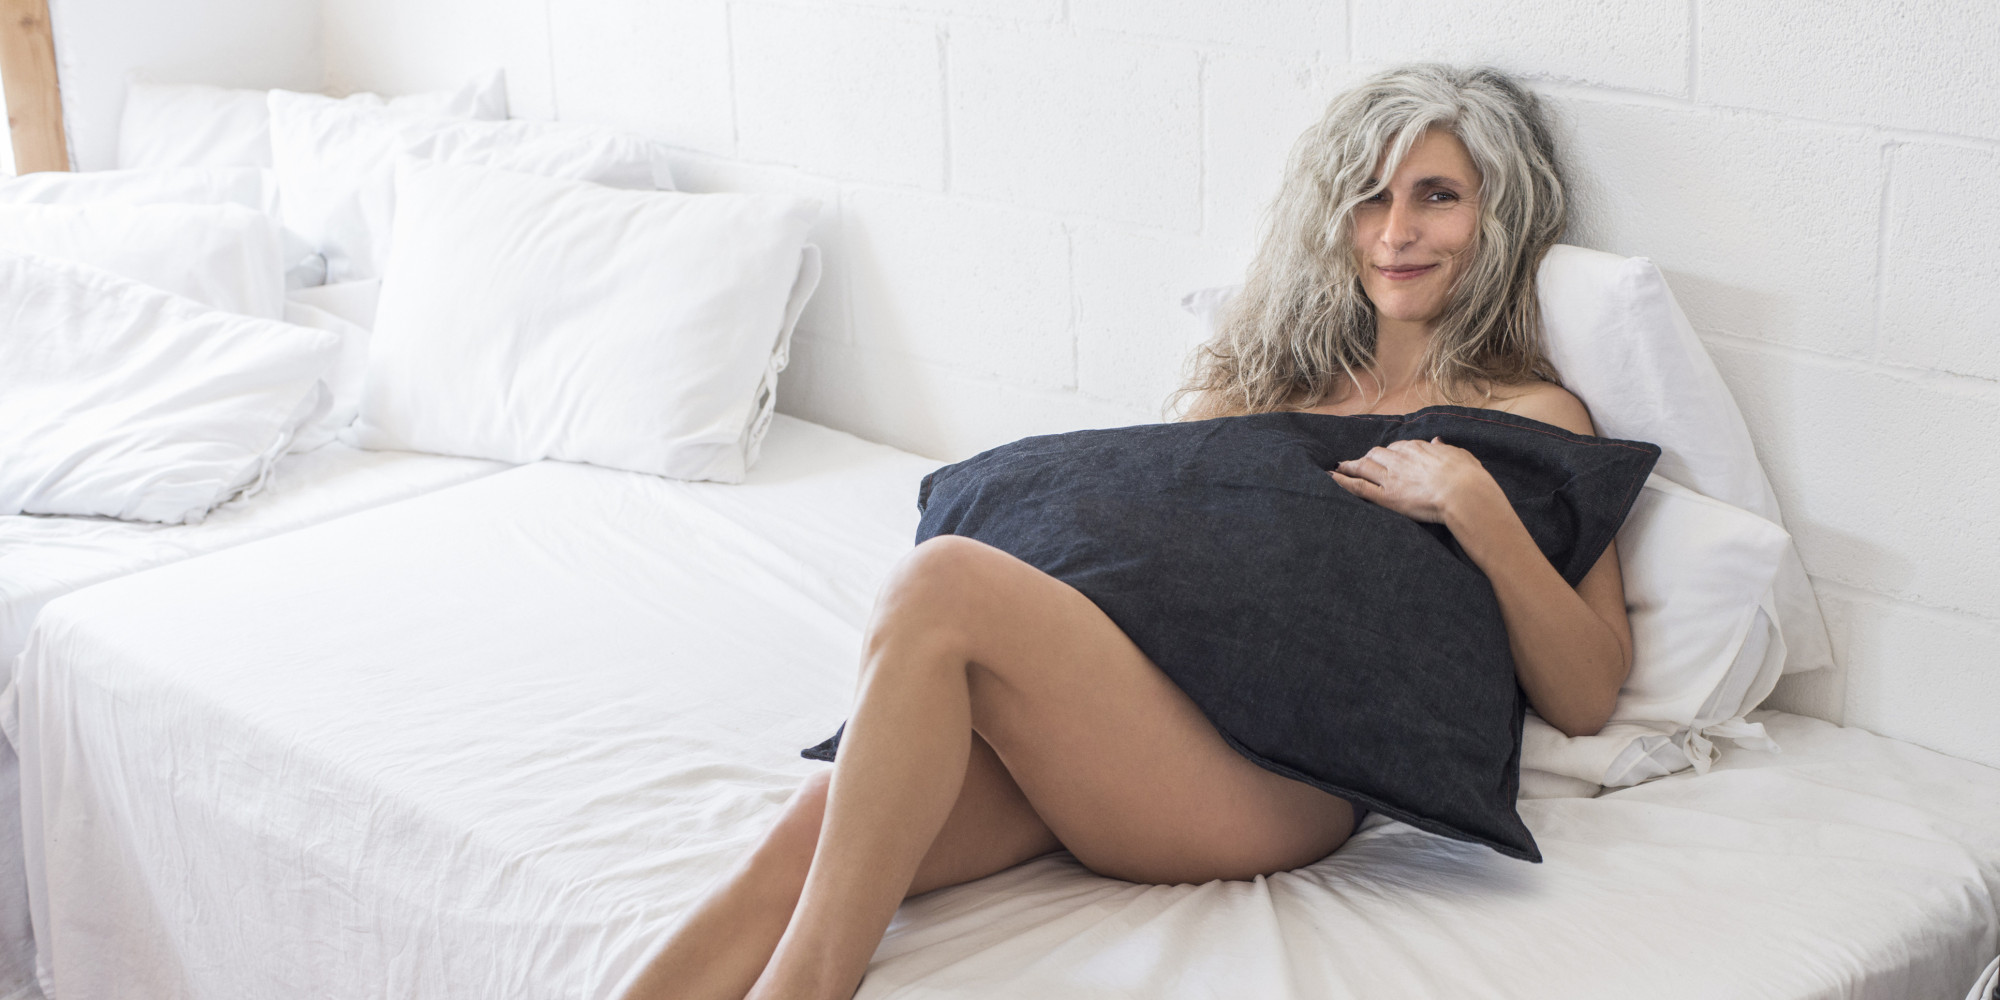 60 Sex For Spanish Woman 65 To Divorced Looking Virginity